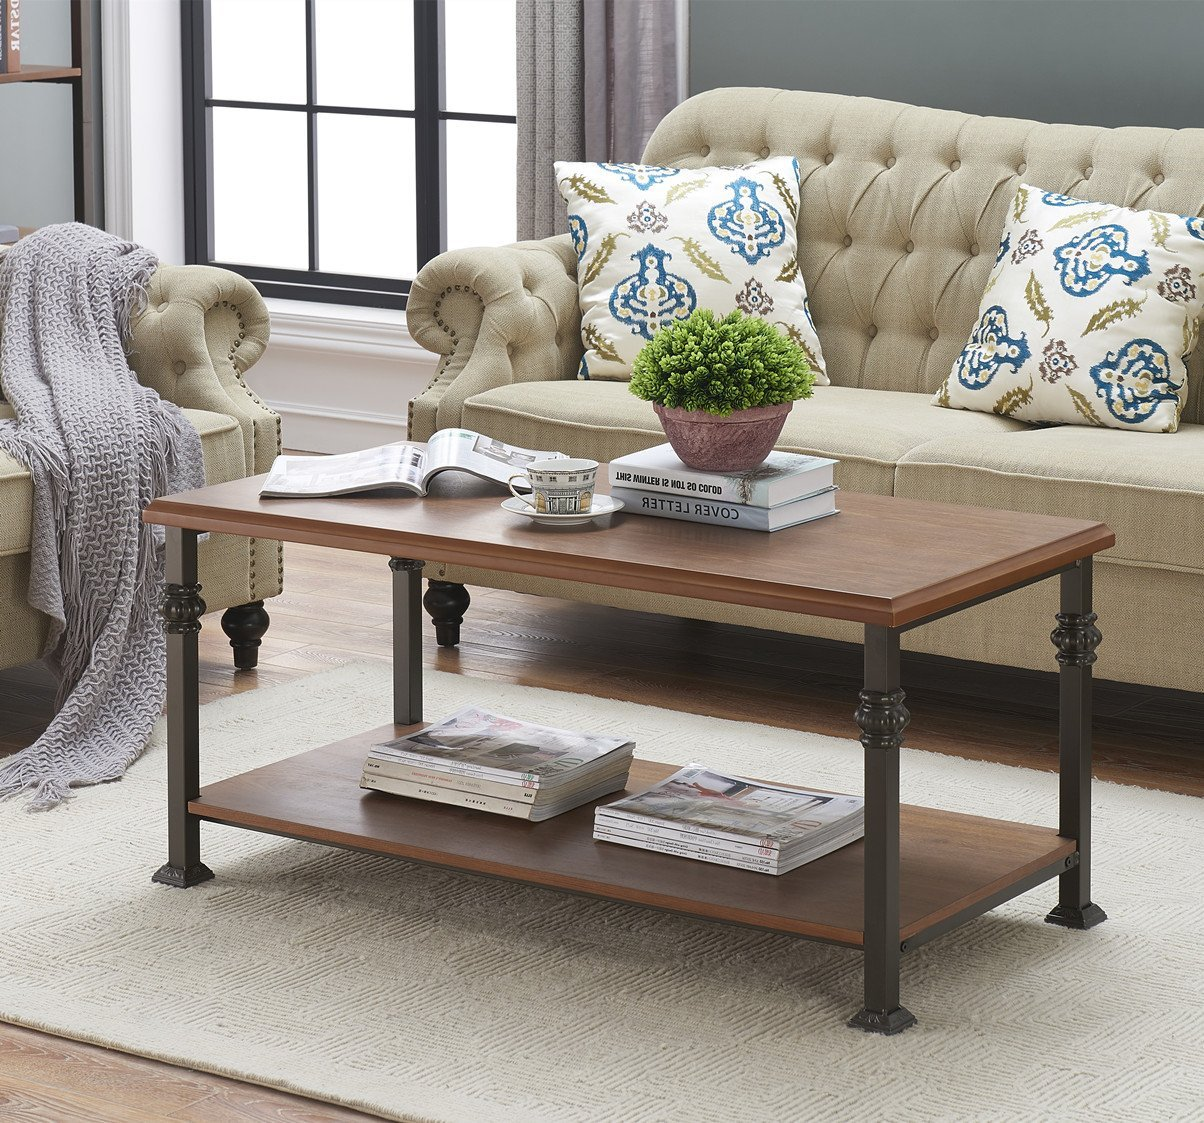 furniture coffee tables for small spaces accent narrow glass table lift great idea you west elm side kitchen ikea night concrete and cabinet legs wood bar stool set dining room